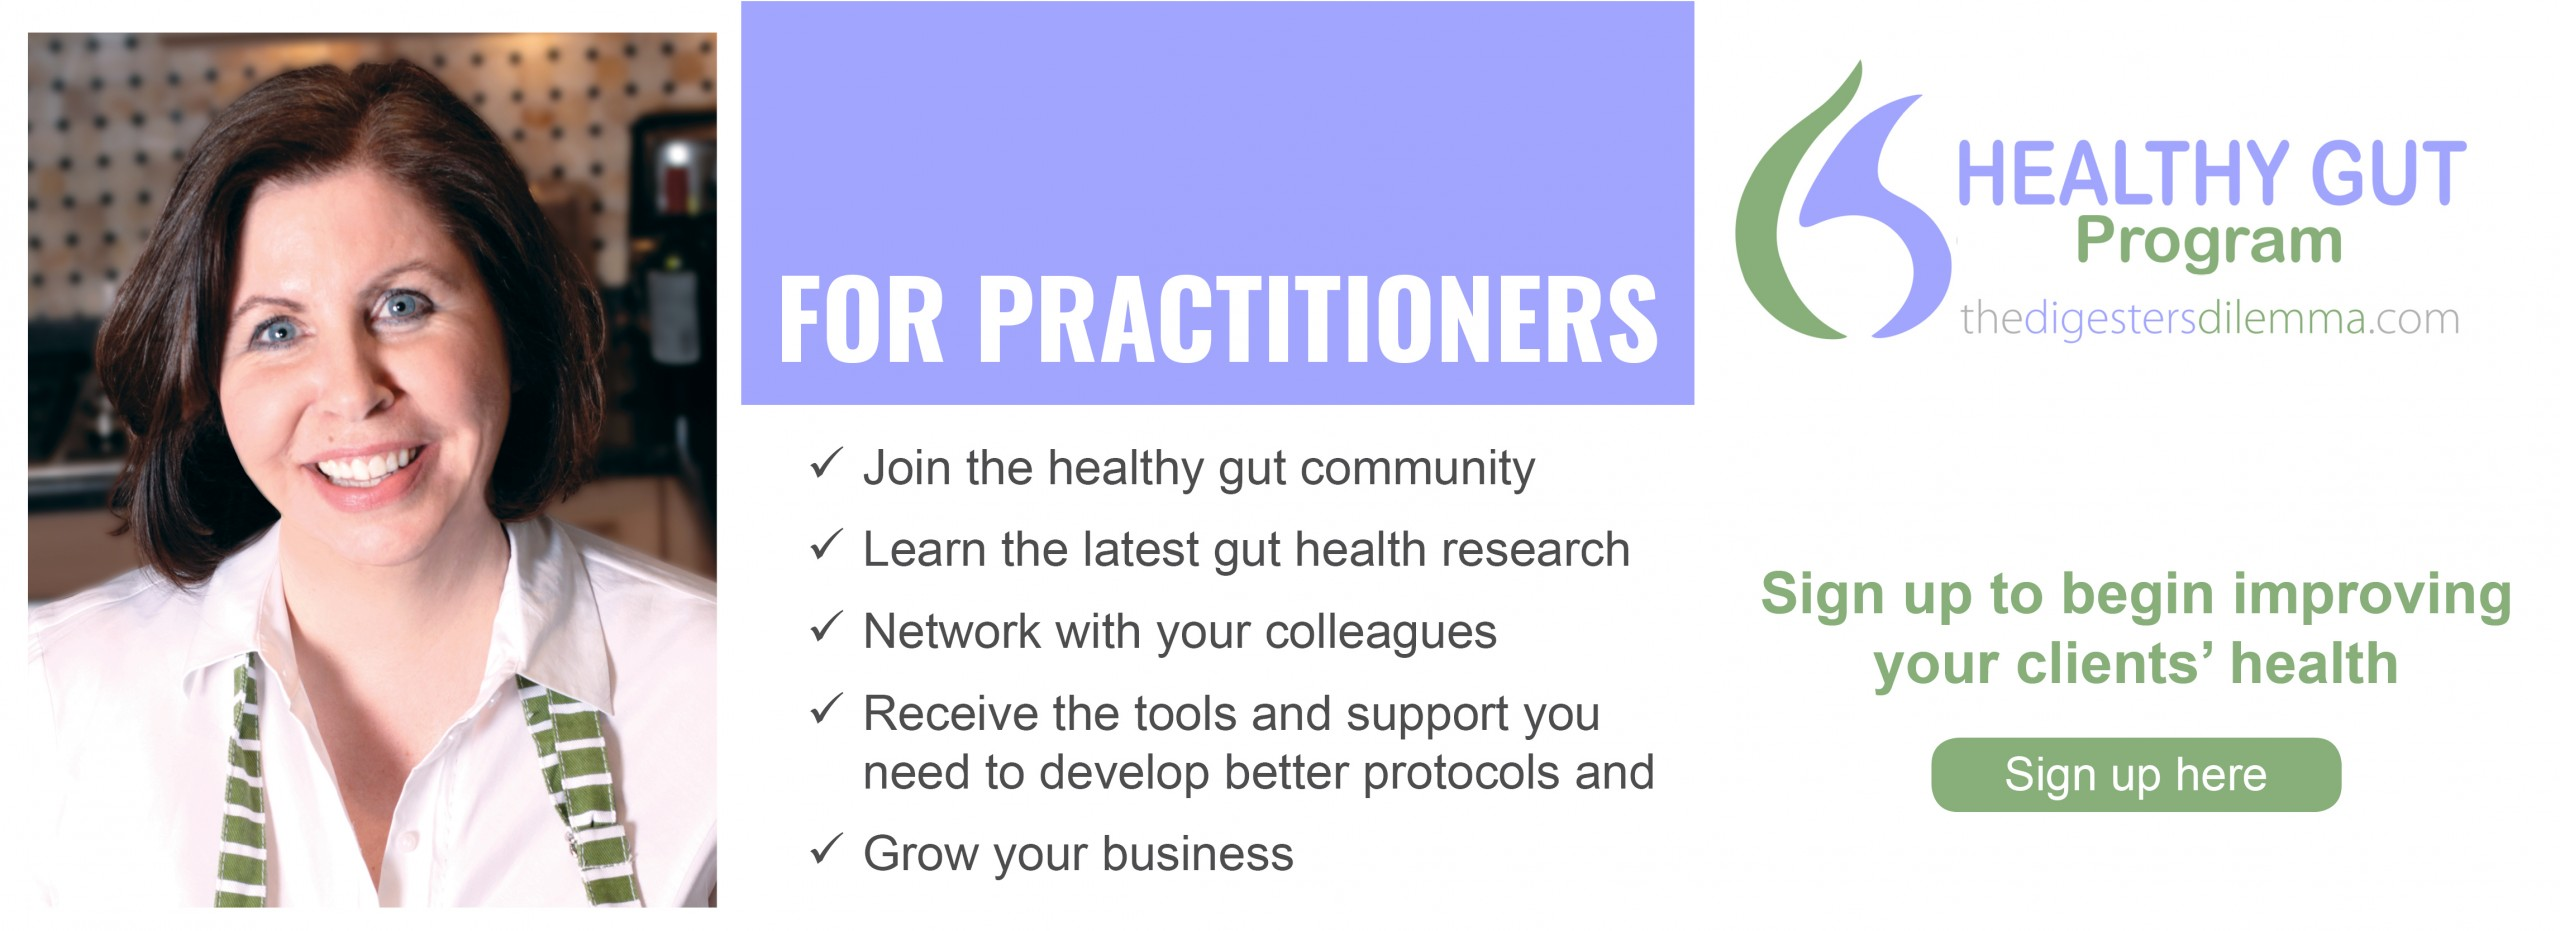 Healthy Gut Program